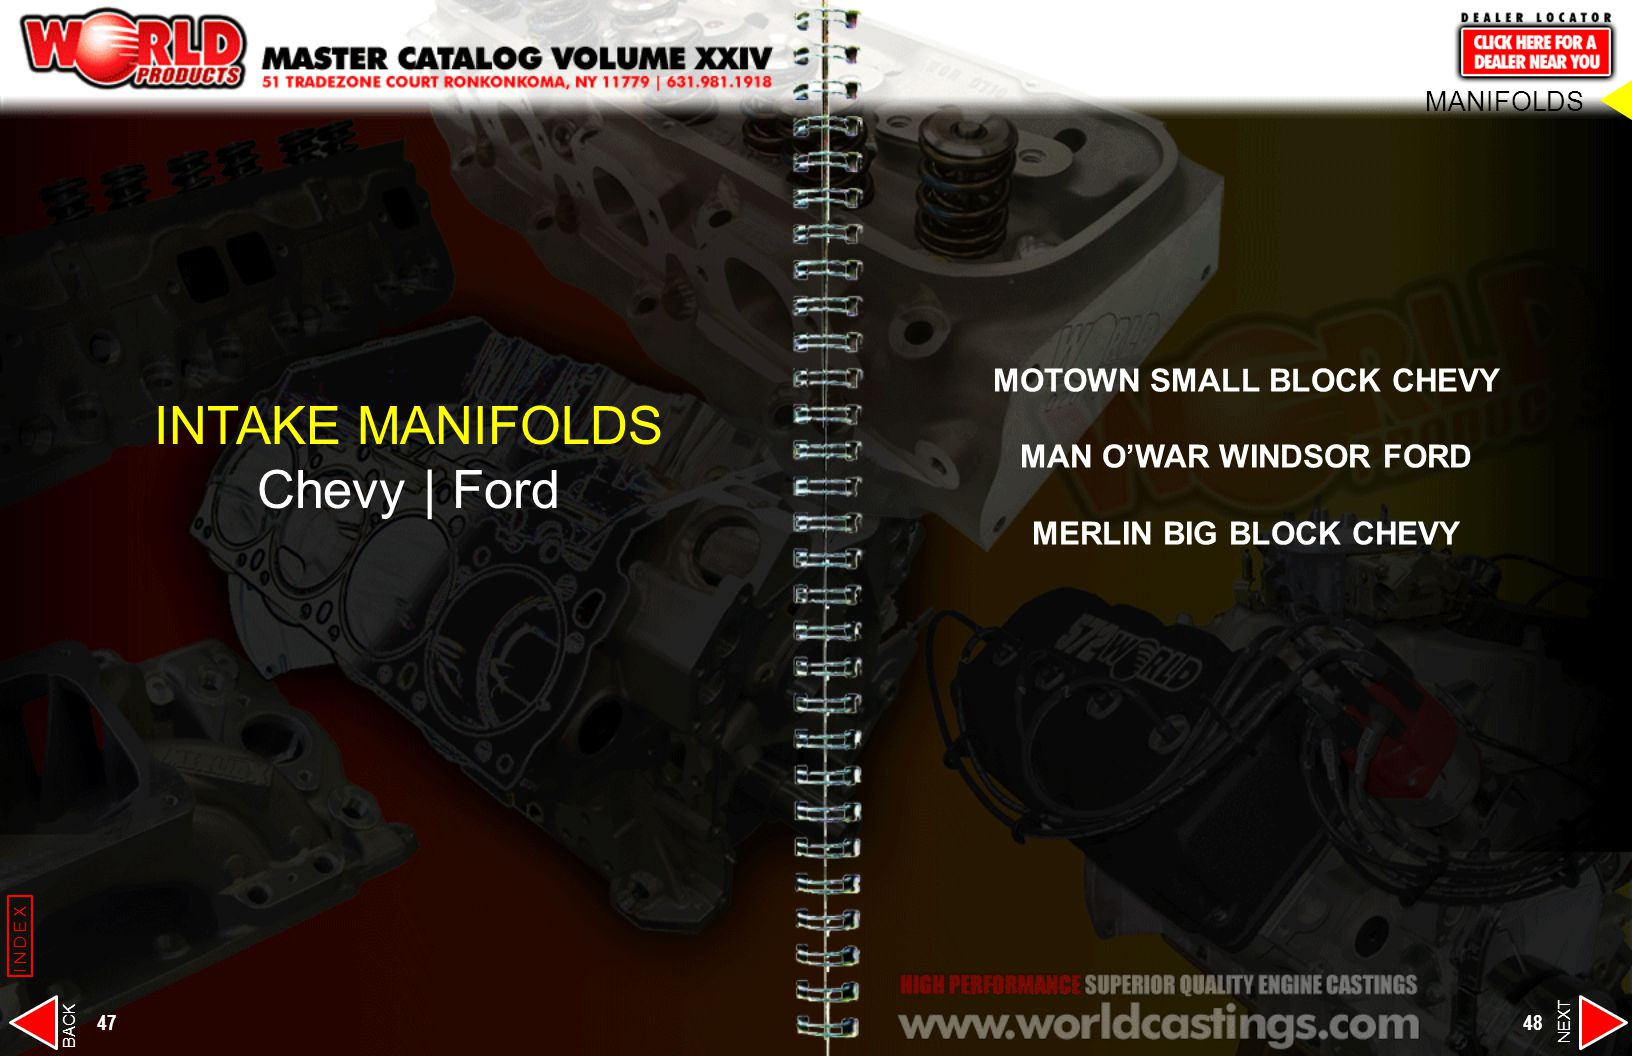 MOTOWN SMALL BLOCK CHEVY MAN OWAR WINDSOR FORD MERLIN BIG BLOCK CHEVY INTAKE MANIFOLDS Chevy | Ford MANIFOLDS 47 48 NEXT BACK INDEX